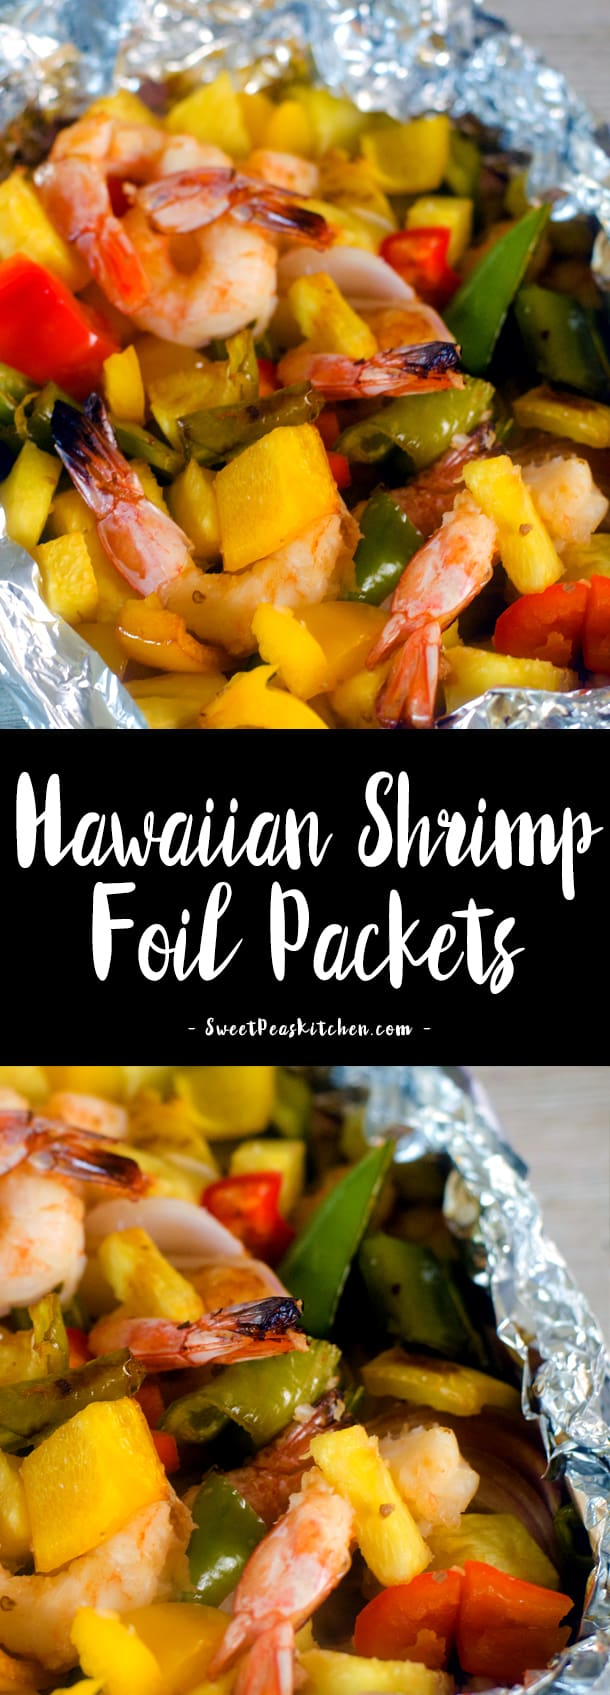 Hawaiian Shrimp Foil Packets